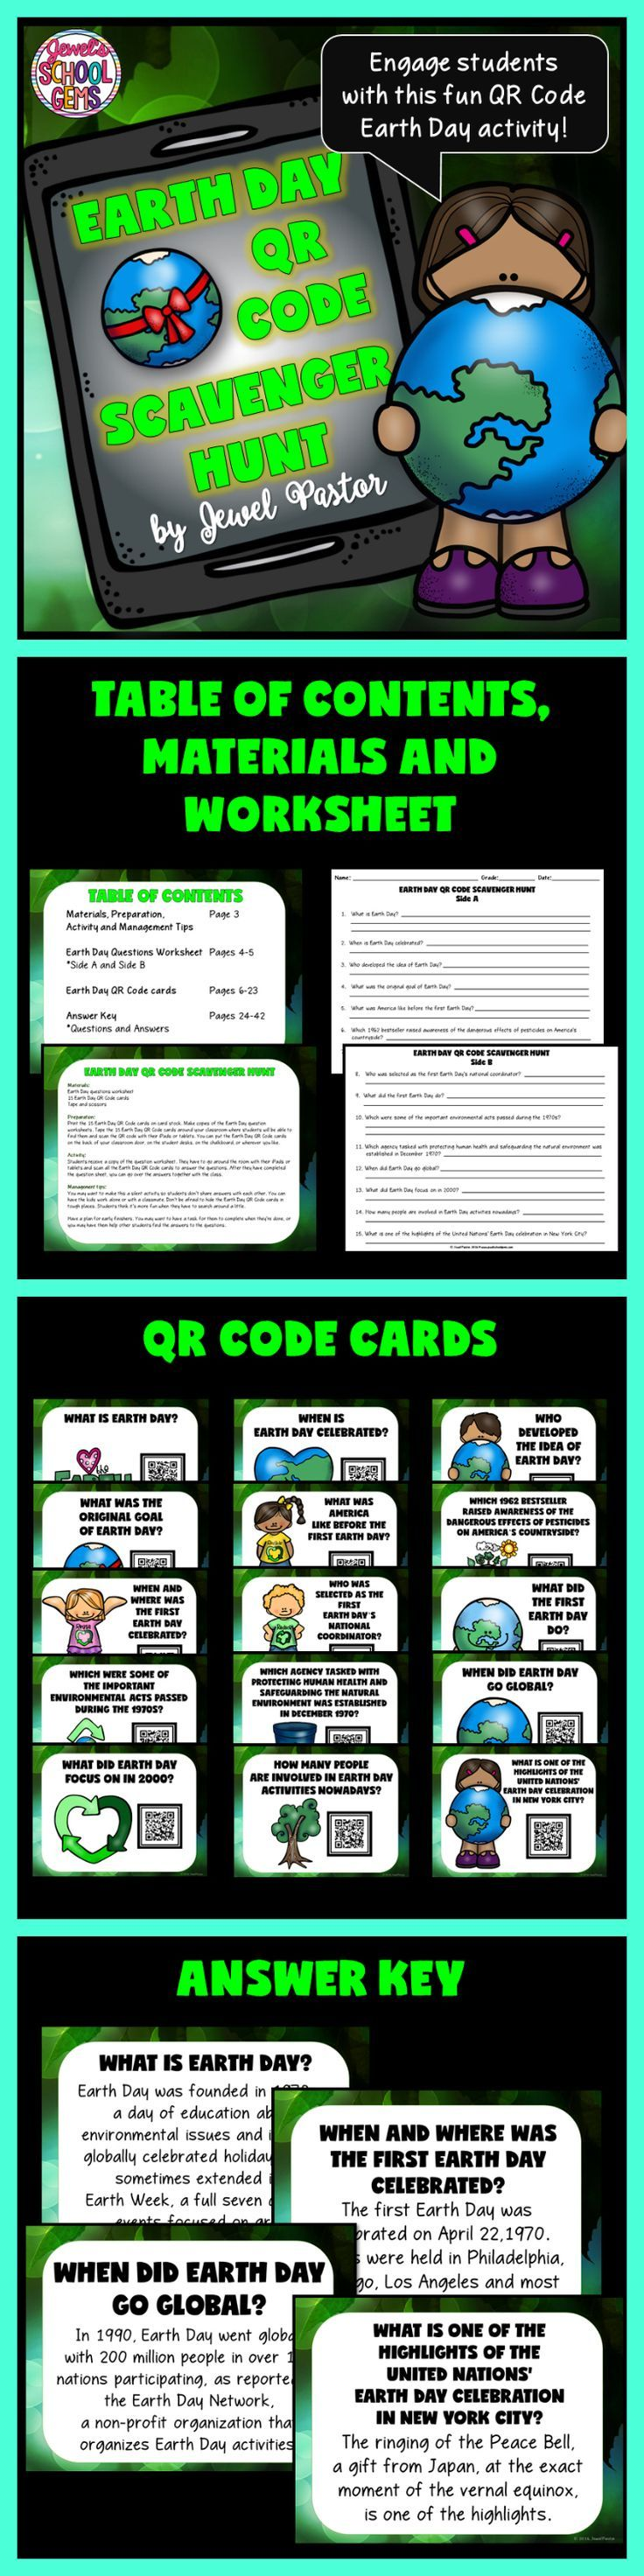 Earth Day Activities  EARTH DAY QR CODE SCAVENGER HUNT   In search of fun Earth Day activities? Engage your students with this fun Earth Day QR Code Scavenger Hunt!  Page 3: Materials, Preparation, Activity and Management Tips  Pages 4-5: Earth Day Questions Worksheet  Pages 6-20: QR Code Cards (The cards cover questions on the history, fun facts and celebrations of Earth Day.)  Pages 21-36: Answer Key